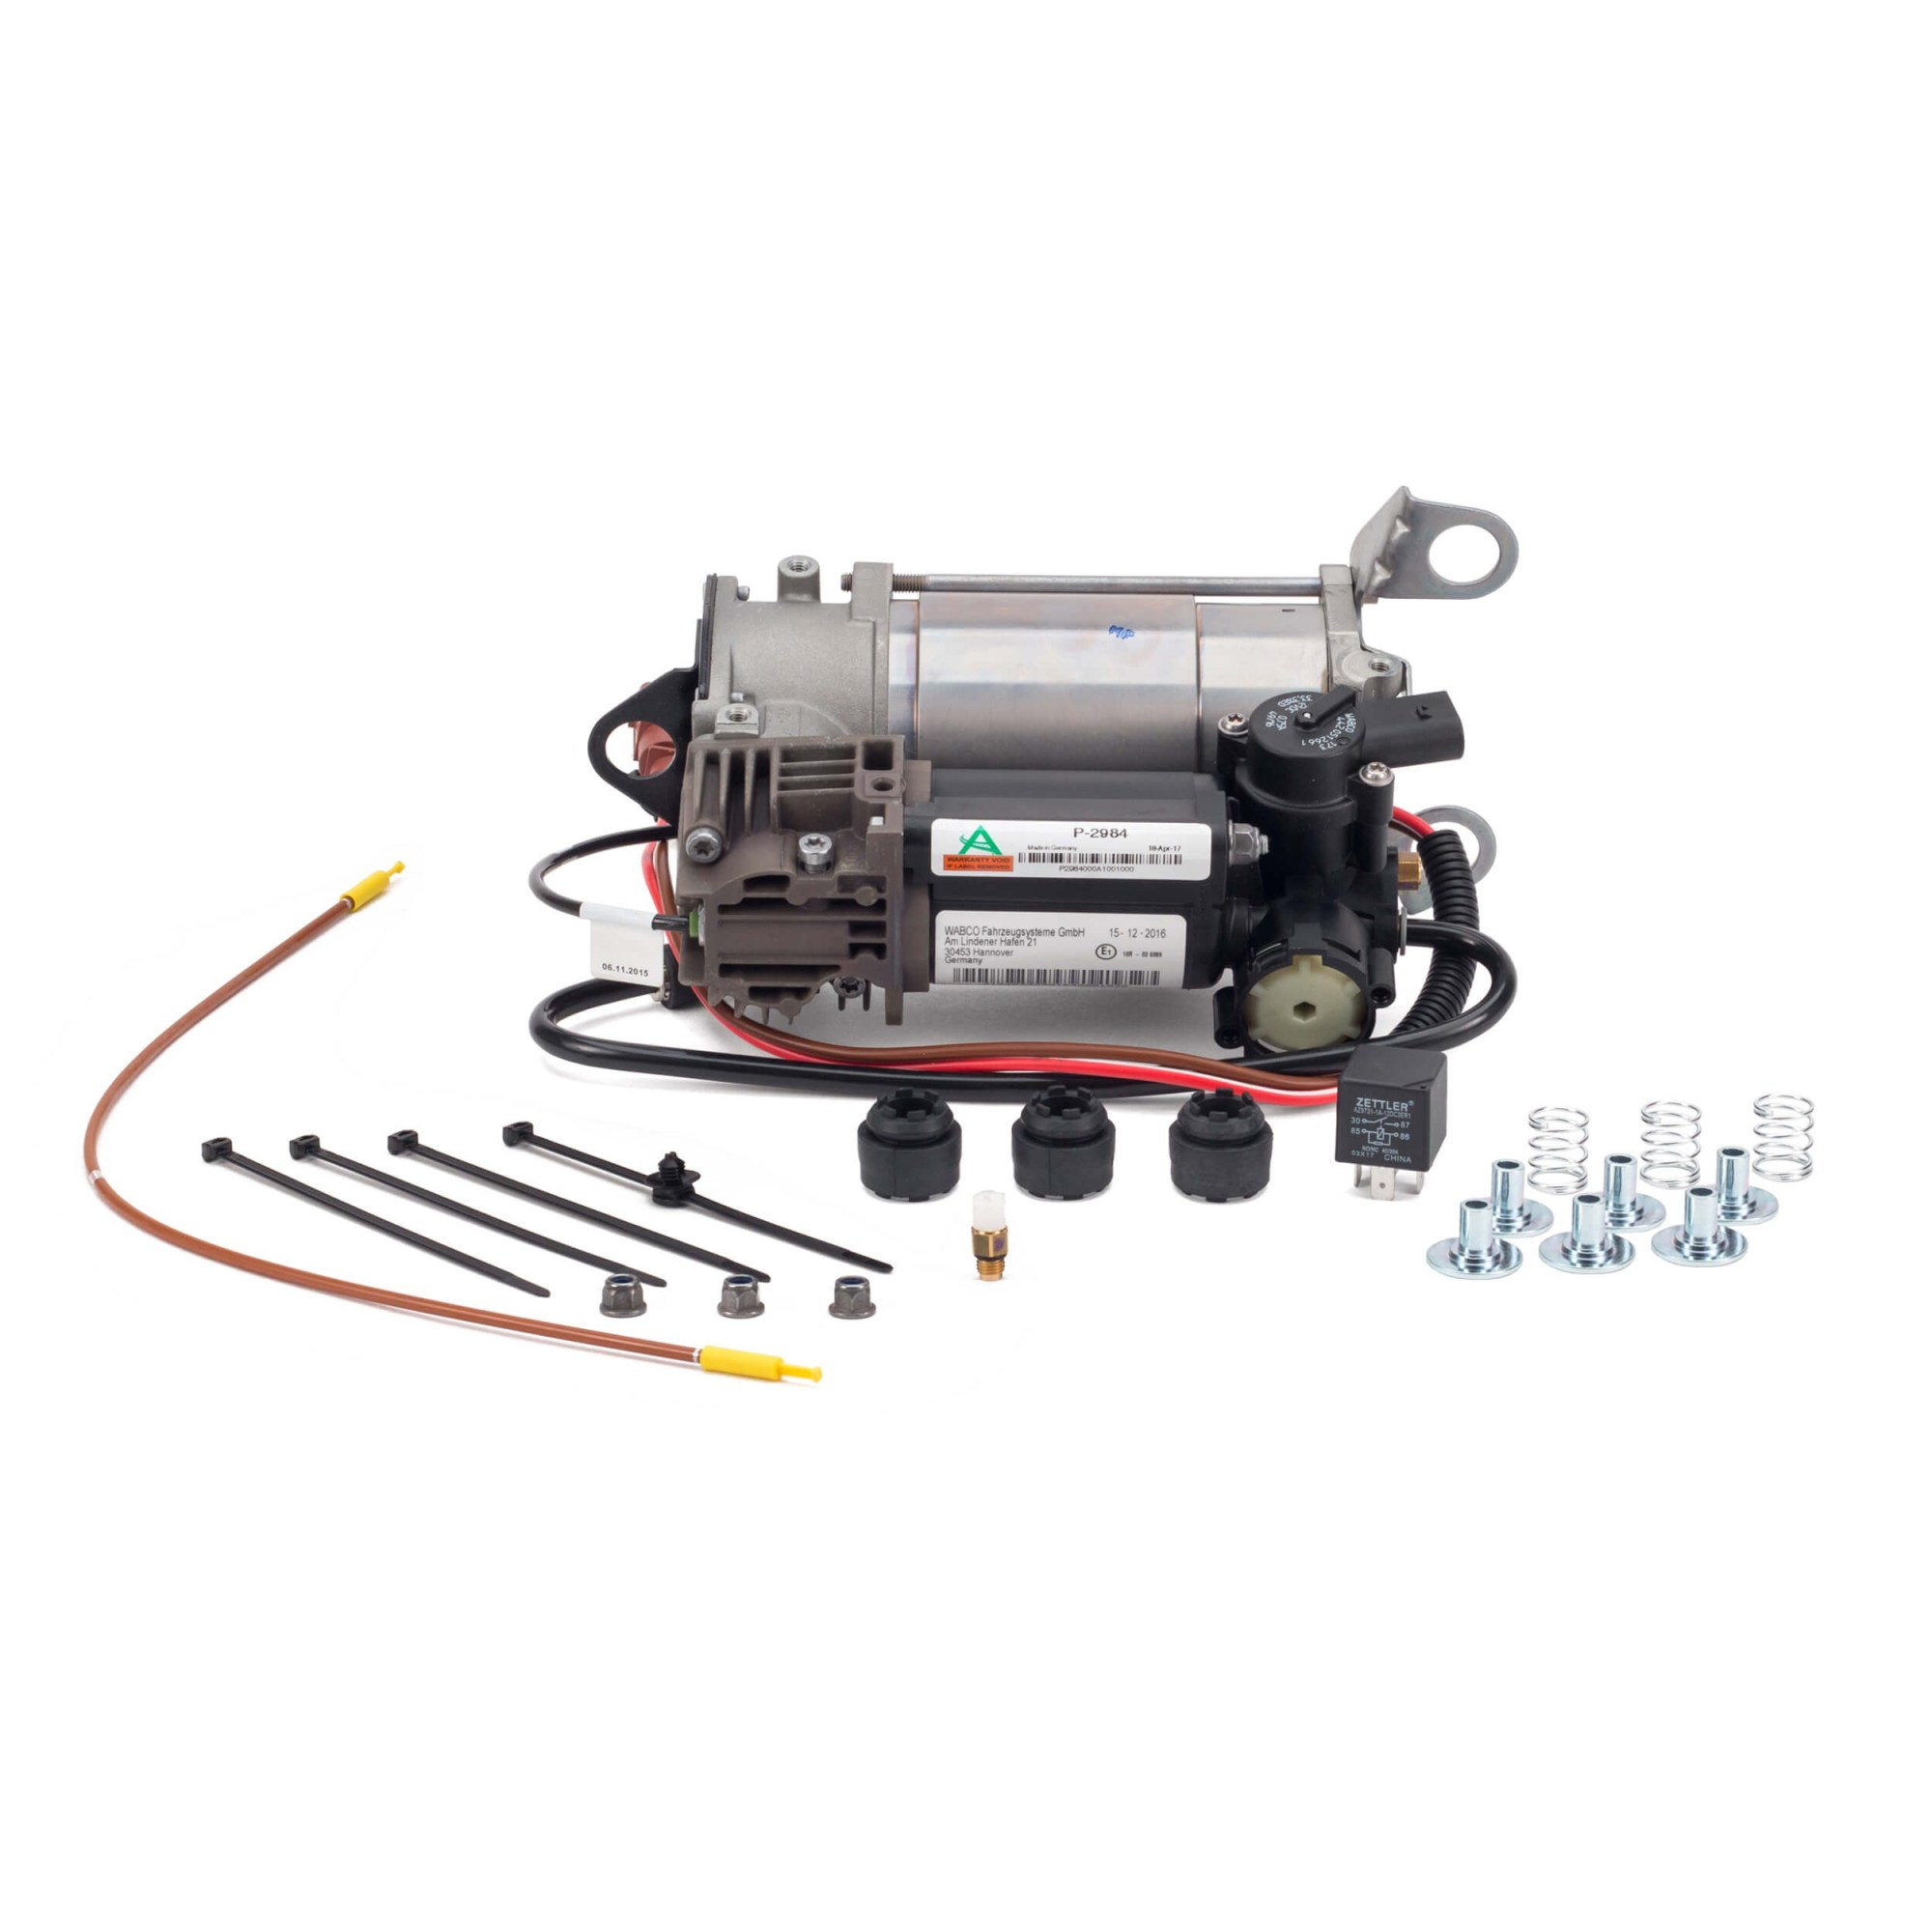 hight resolution of wabco compressor wiring diagram wiring diagramswabco compressor wiring diagram wiring diagram data wabco compressor wiring diagram